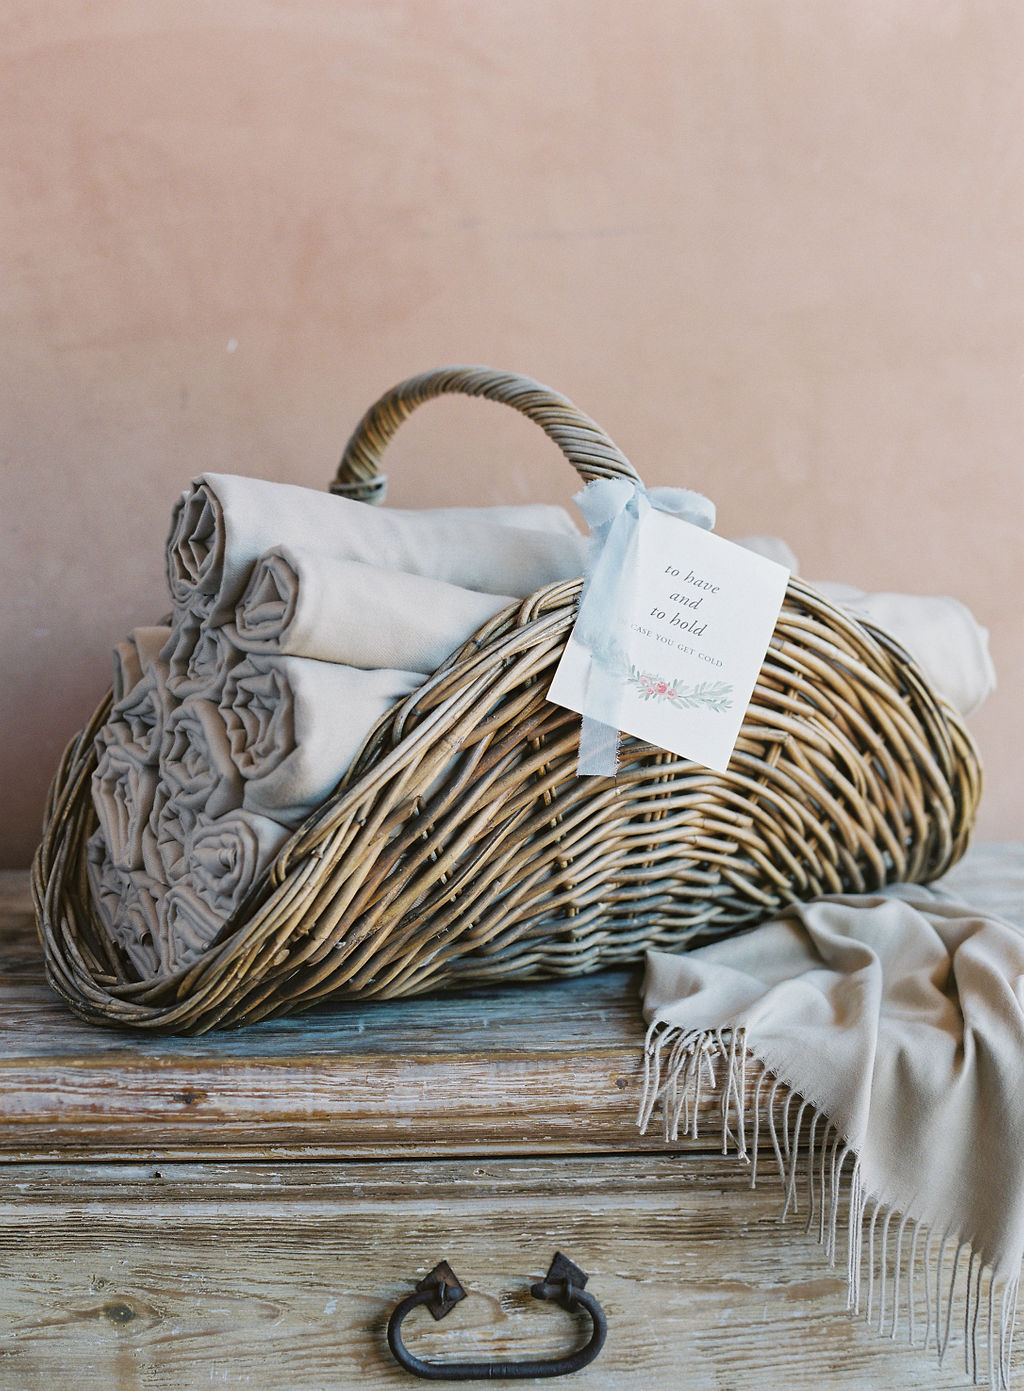 wicker basket of tan blankets for guests